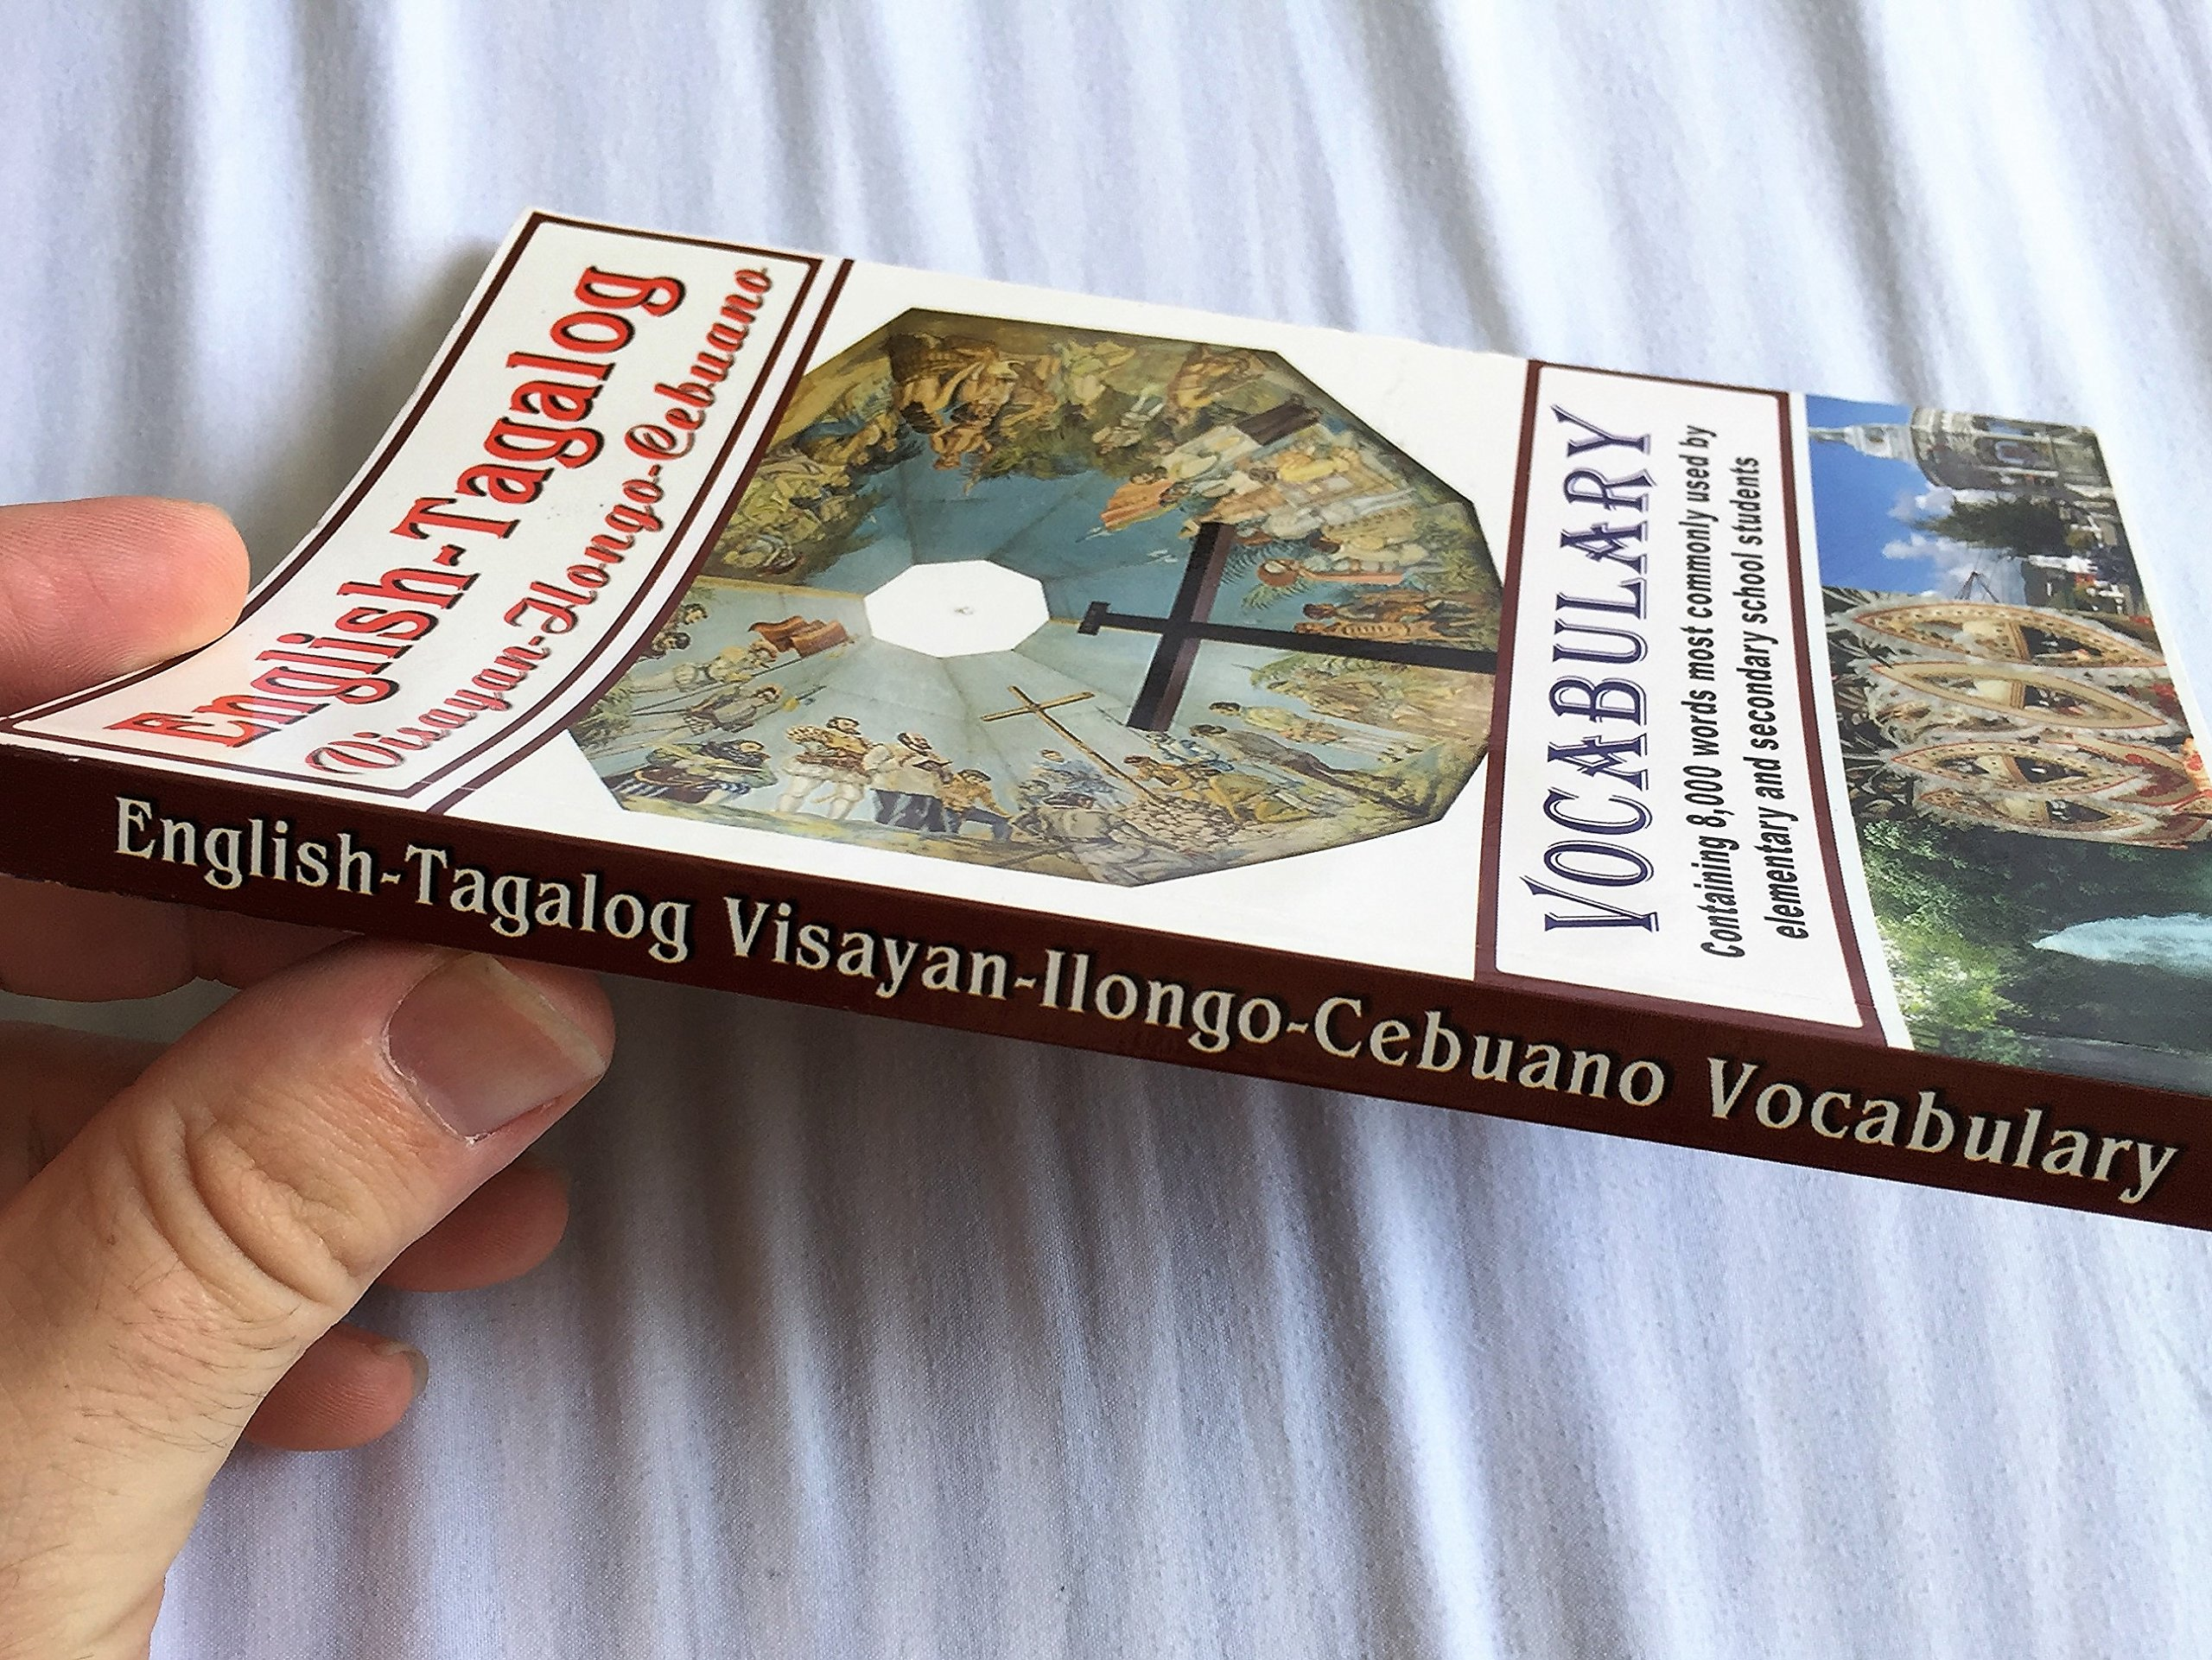 Knitting Meaning In Tagalog : English tagalog visayan dictionary philippine books